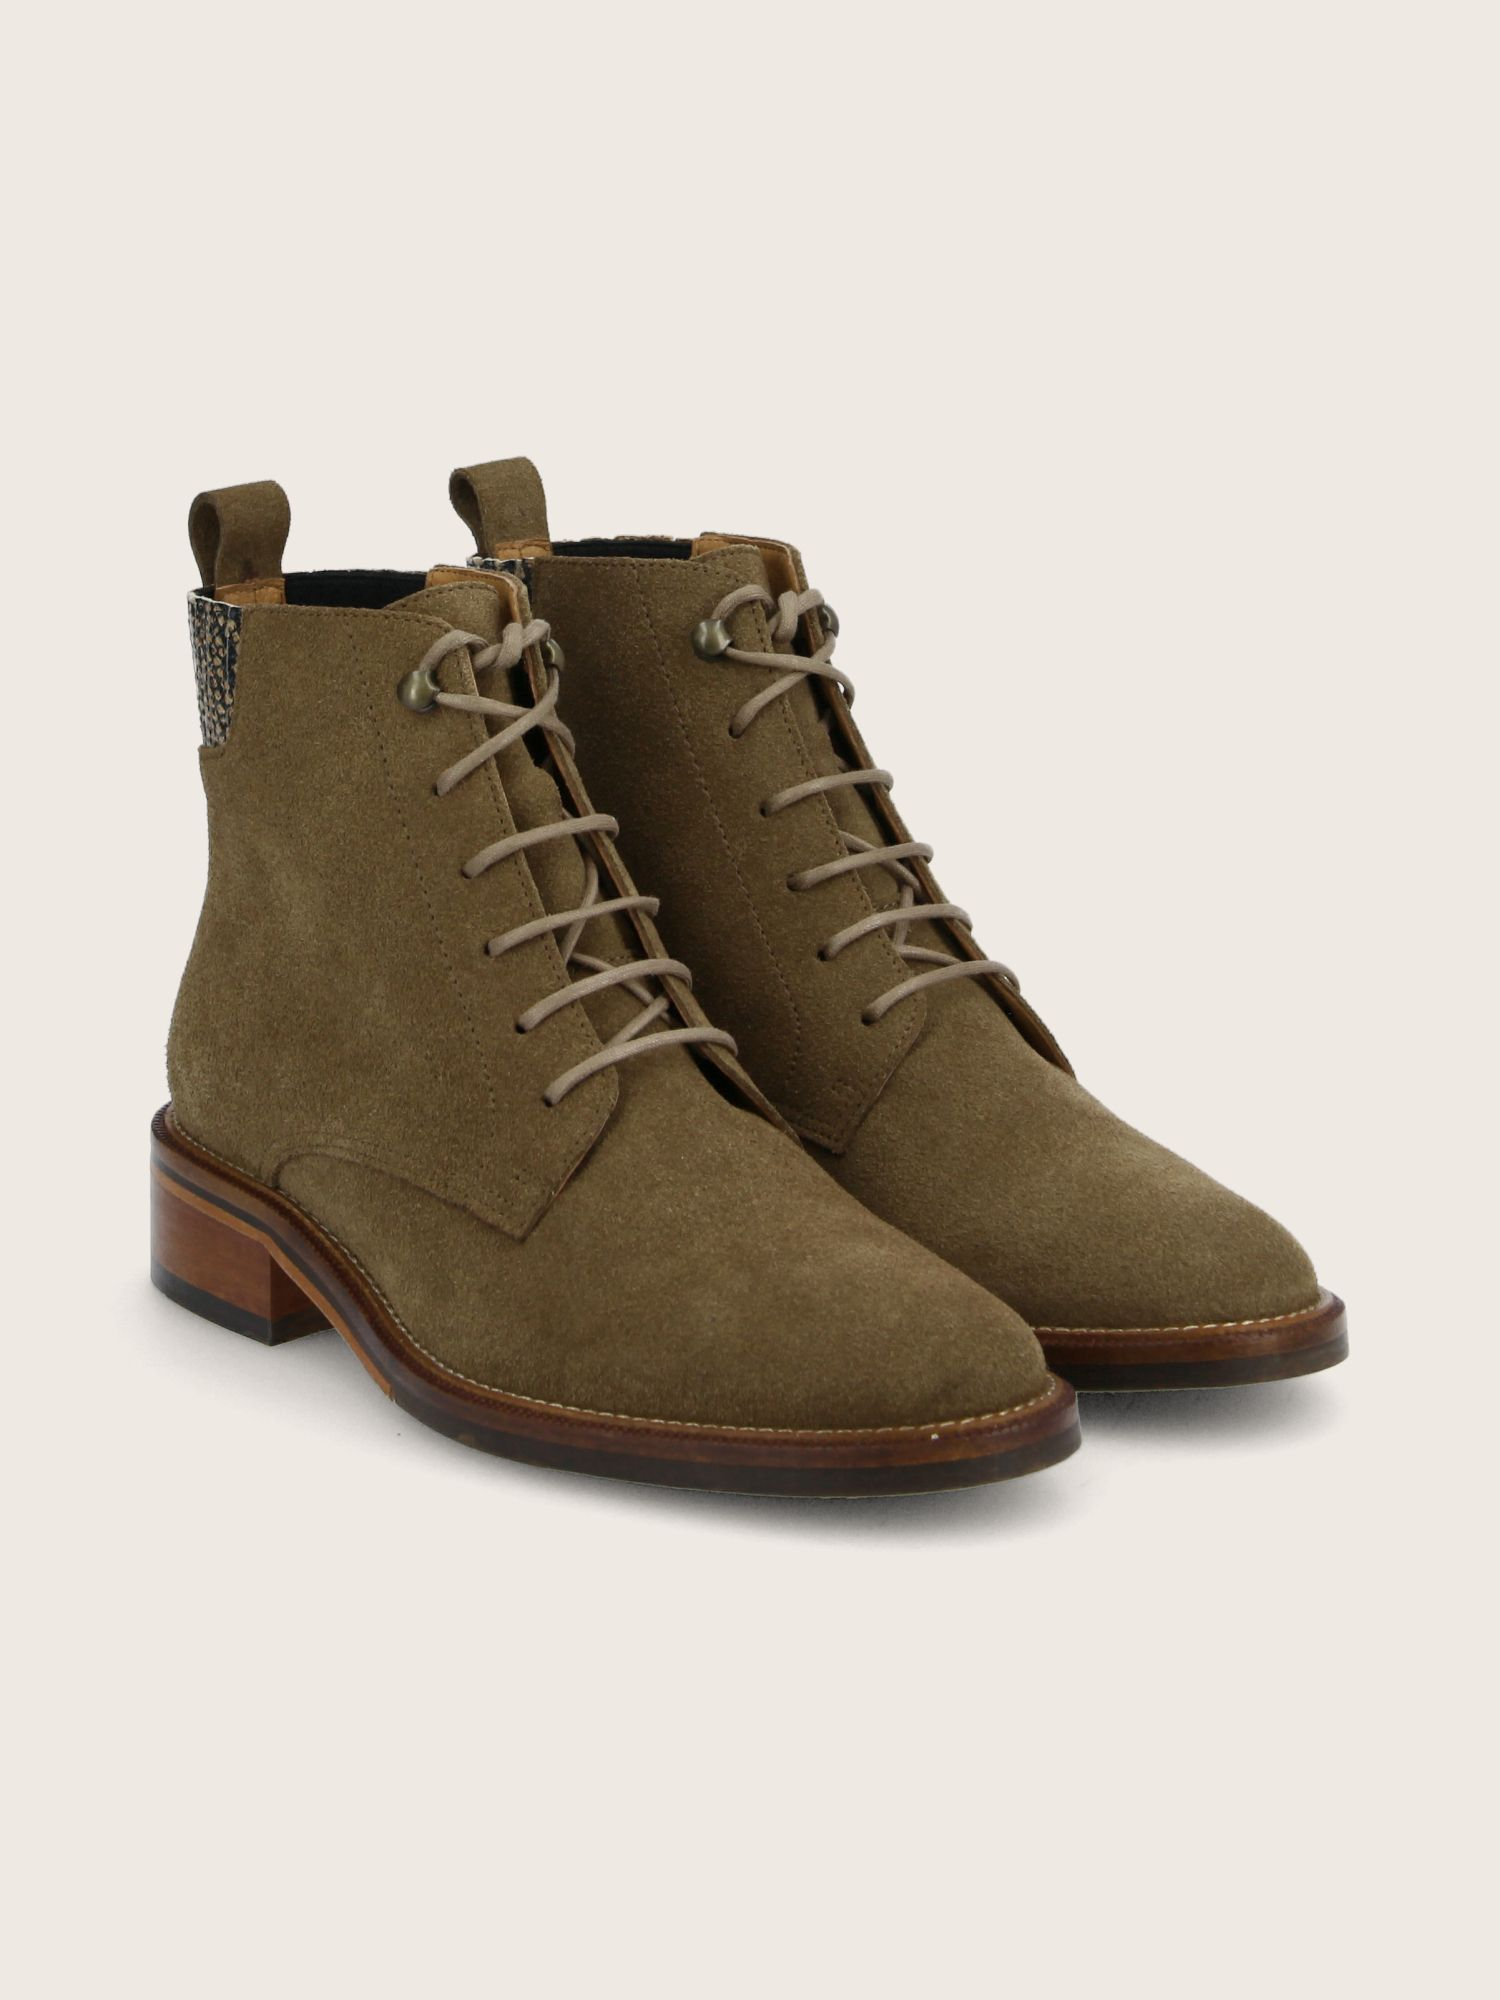 schmoove.fr CANDIDE DESERT BOOTS - SUEDE/DEMBA - TAUPE